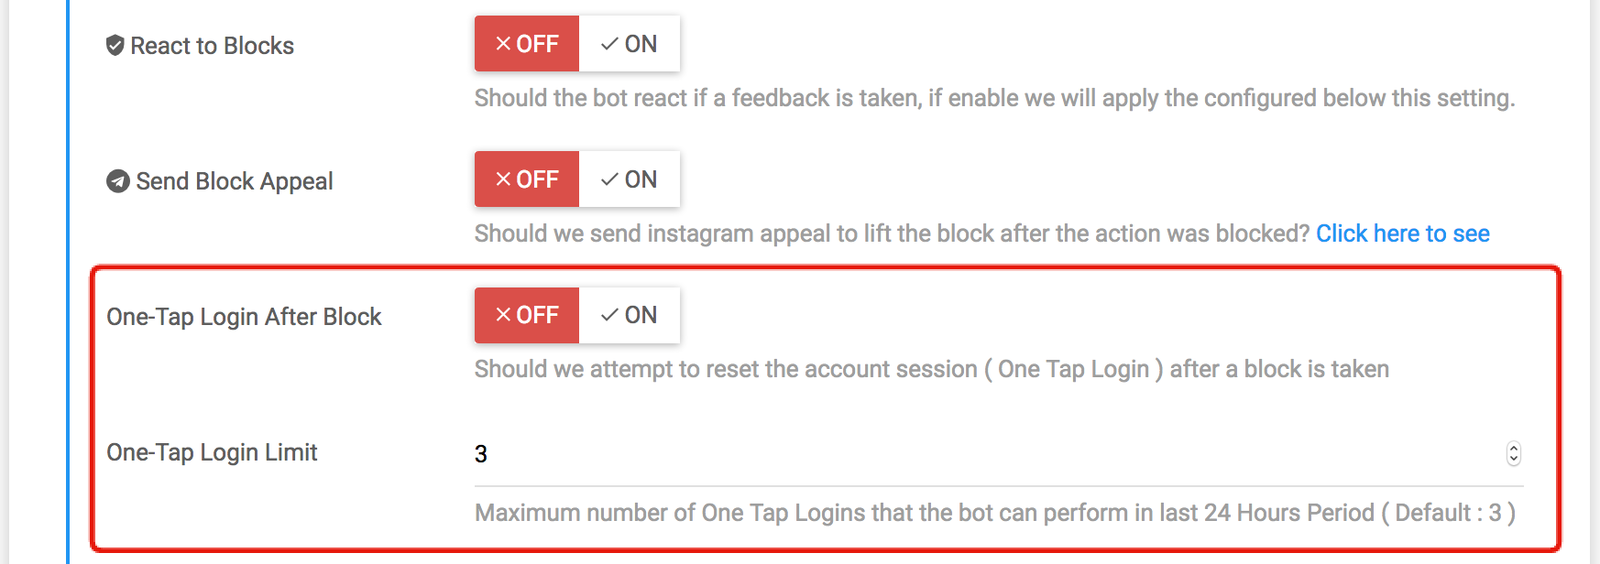 Automate the Session Reset ( One-Tap Logins ) on Feedback Section